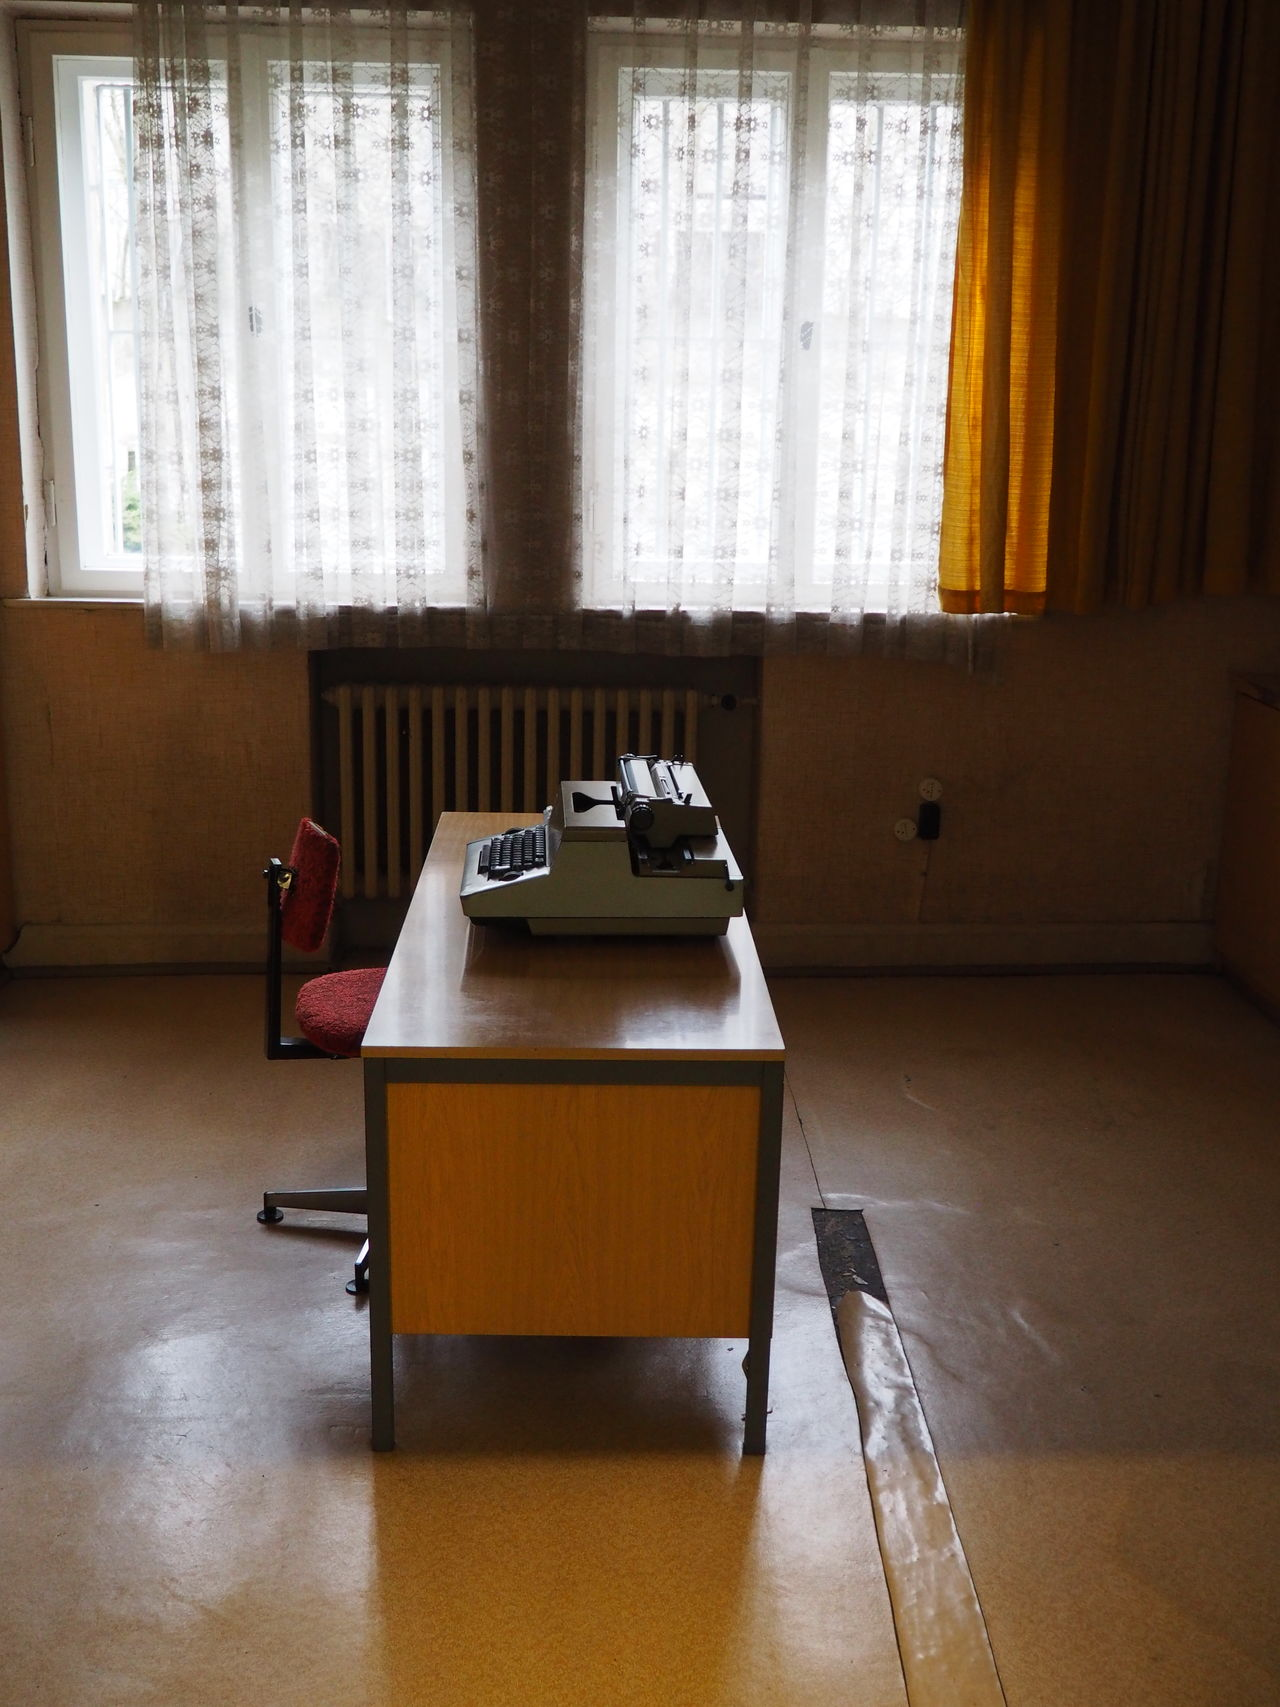 Gedankstätte, Berlin, Stasi 70s Absence Chair Curtain Flooring Interrogation Room Office Old-fashioned Table Window Writing Machine